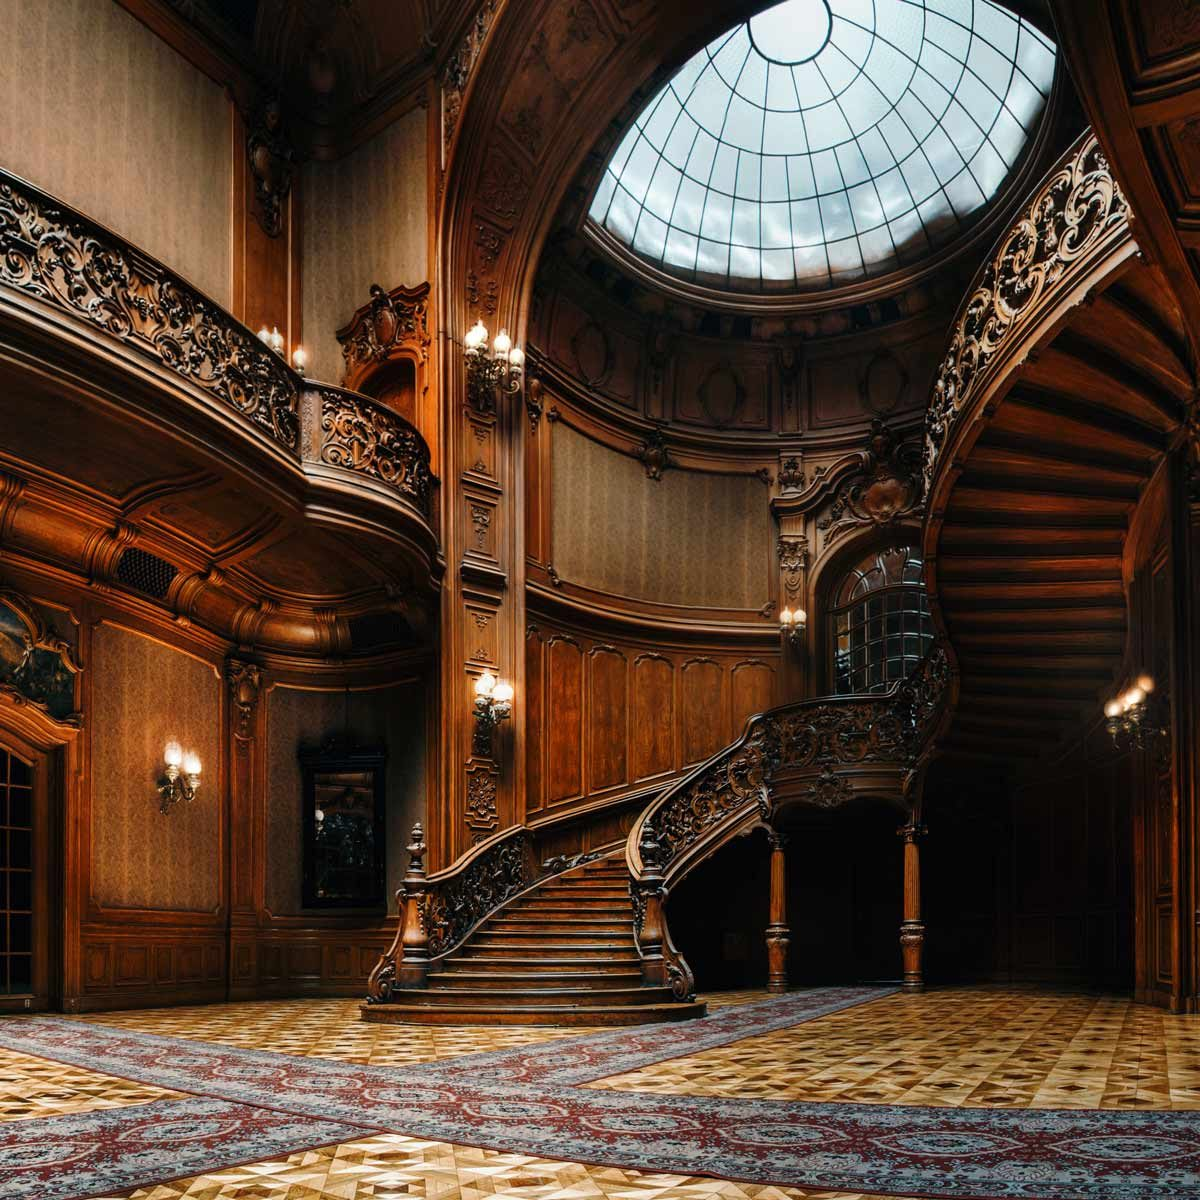 Interior of the magnificent House of Scientists mansion with ornate grand wooden staircase in the great hall.